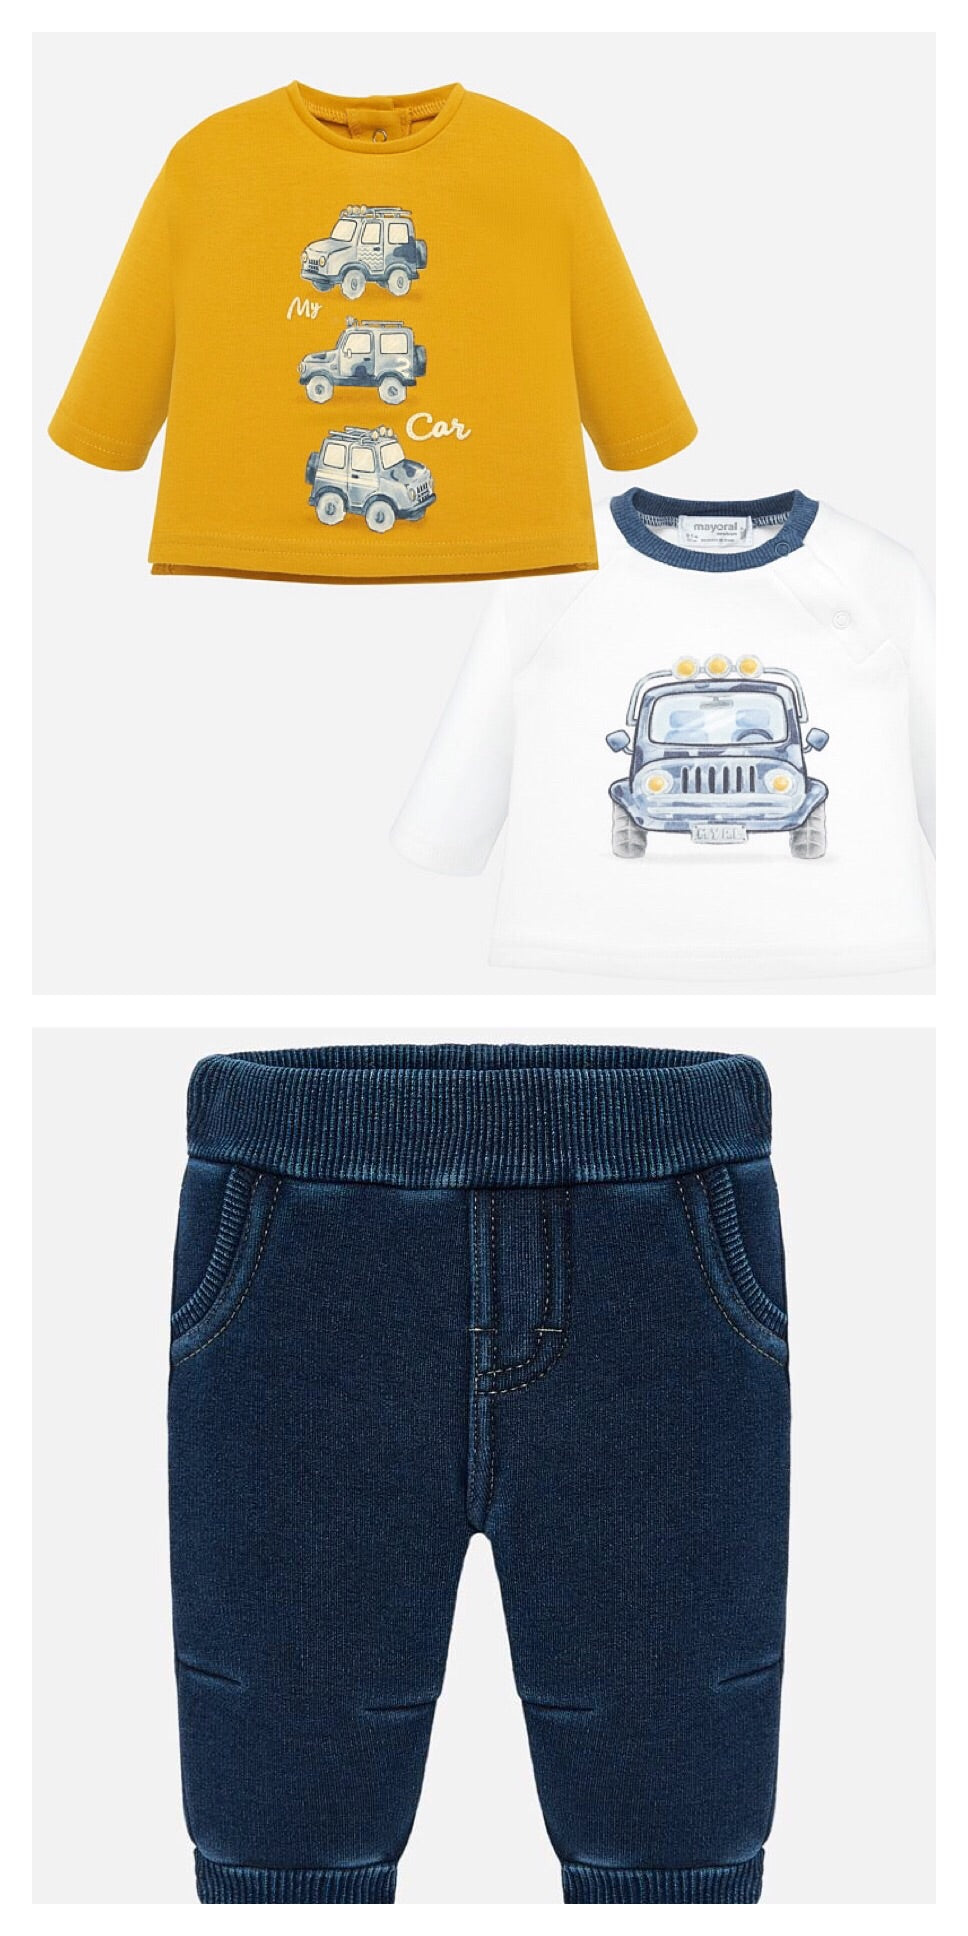 Baby Boys 2 Piece Set Long Sleeved T Shirt with Car Designed Front in Soft Cotton and Soft  Feeling Lined Denim Trousers with 5 Mock Pockets